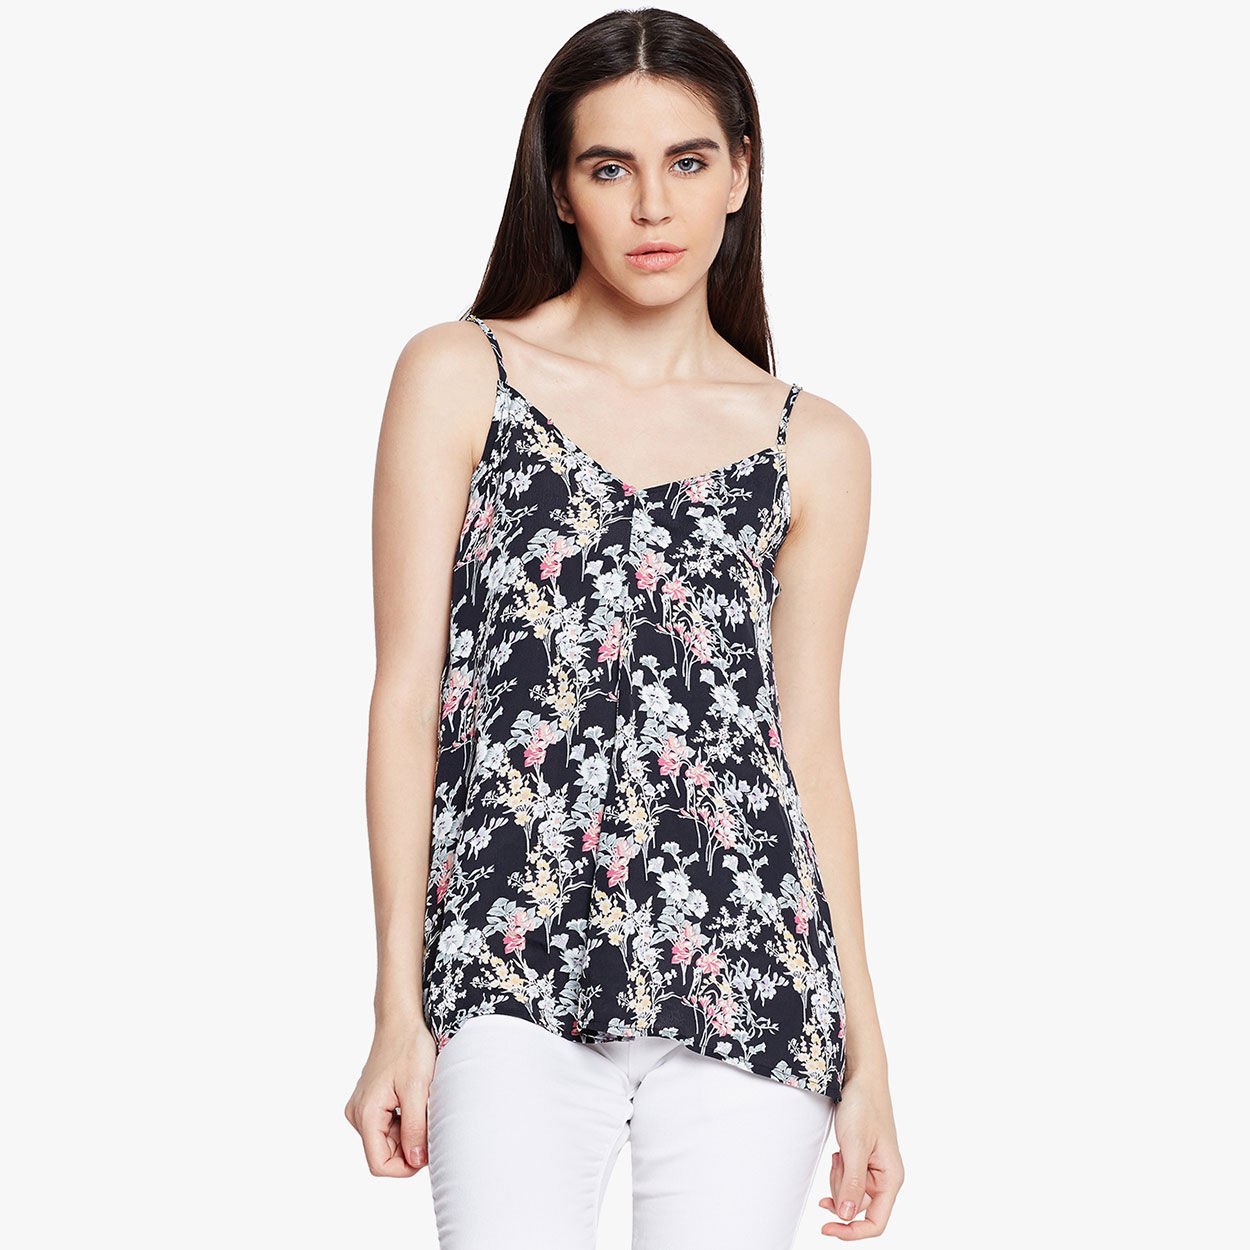 f48545d9156 Buy Oxolloxo Black Floral Print Sleeveless Cami Top